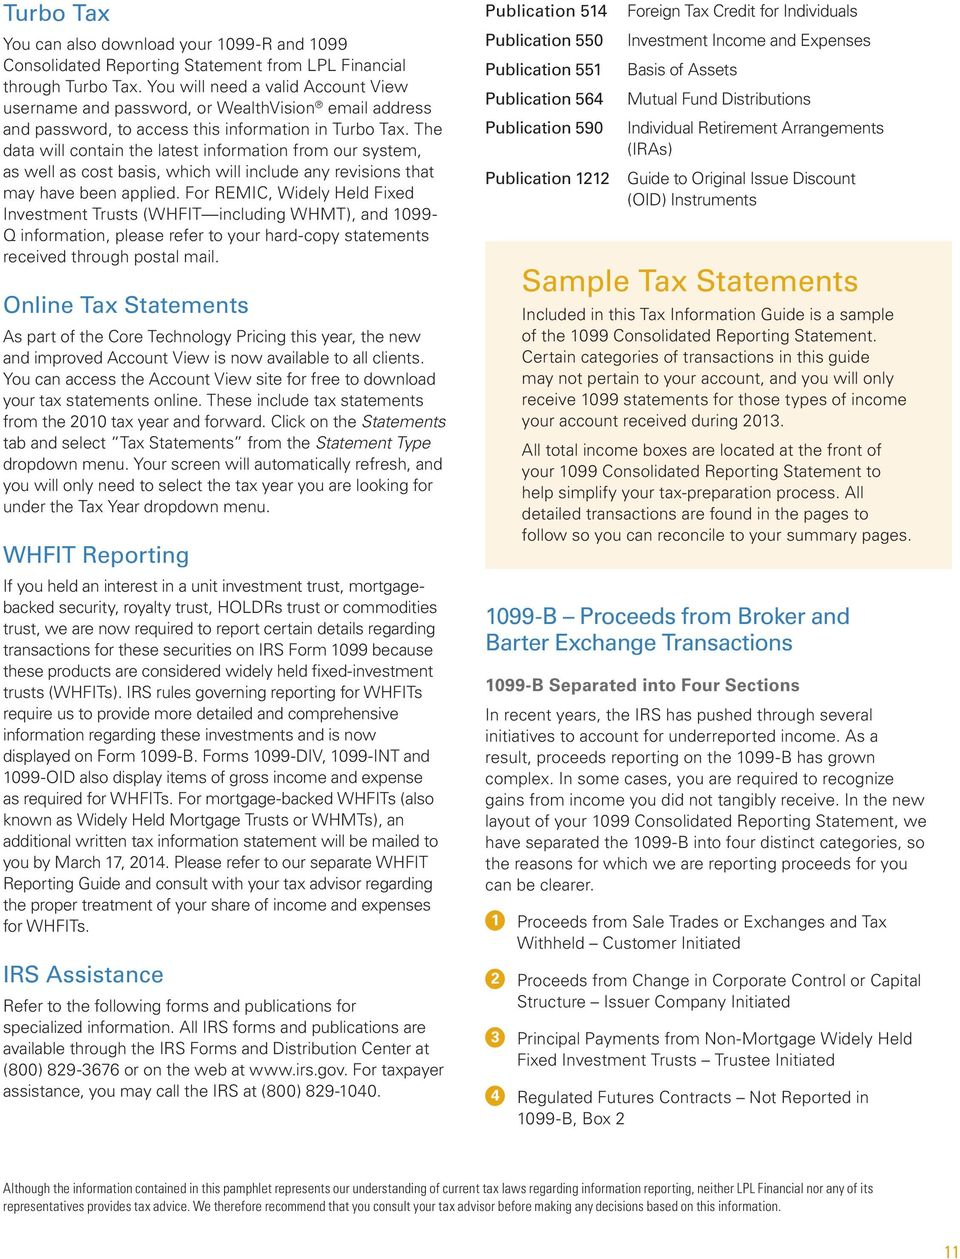 Consolidated Reporting Statement Tax Guide - PDF